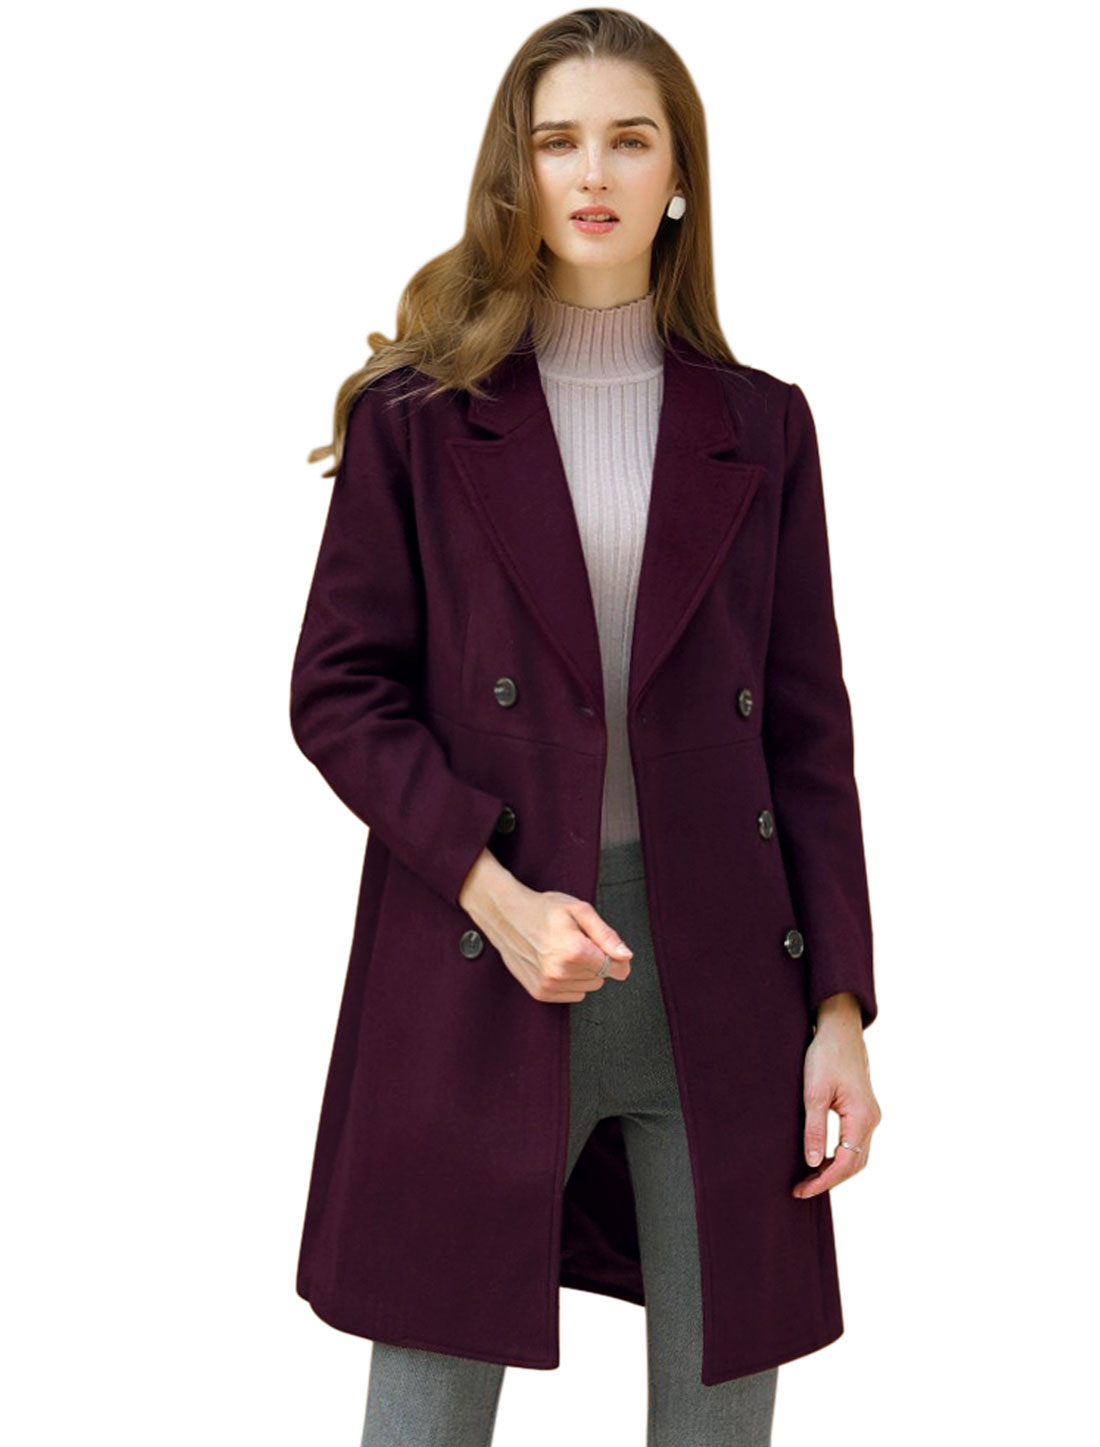 Women's Double Breasted Notched Lapel Winter Long Trench Coat Burgundy S